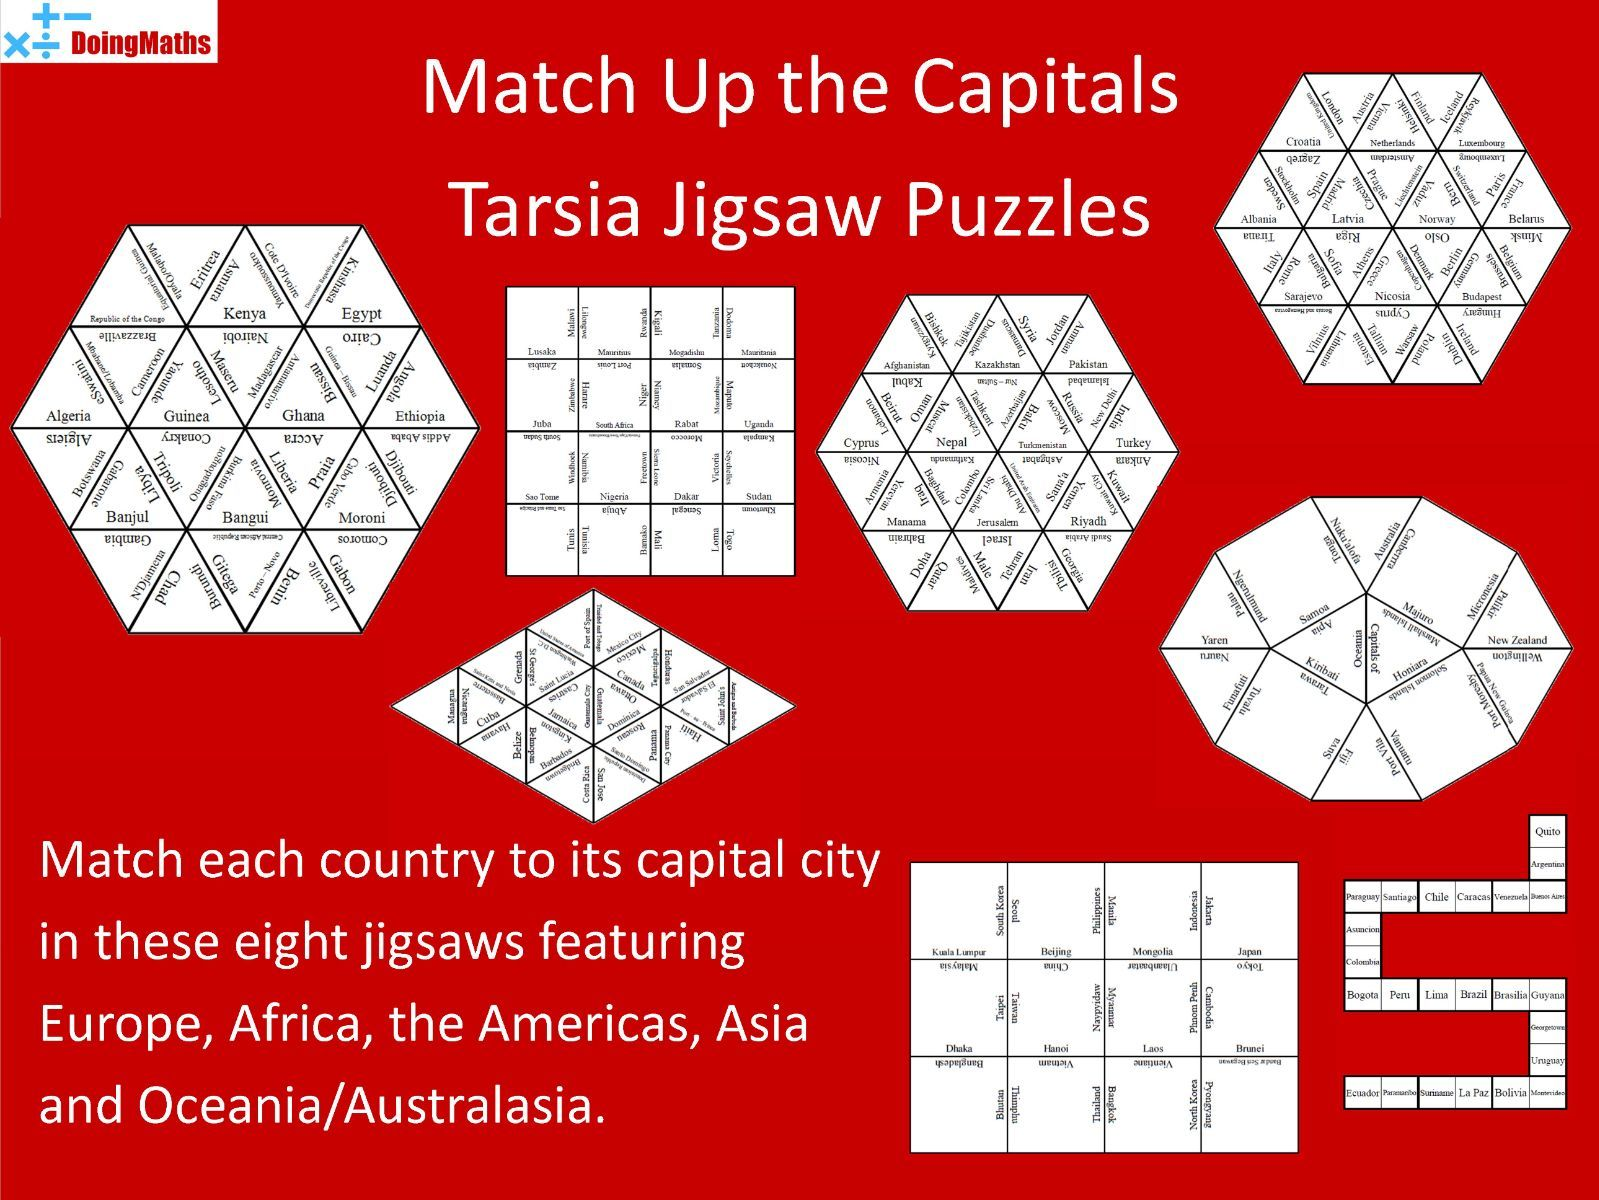 Capital Cities of the World Match-Up Jigsaw Puzzles